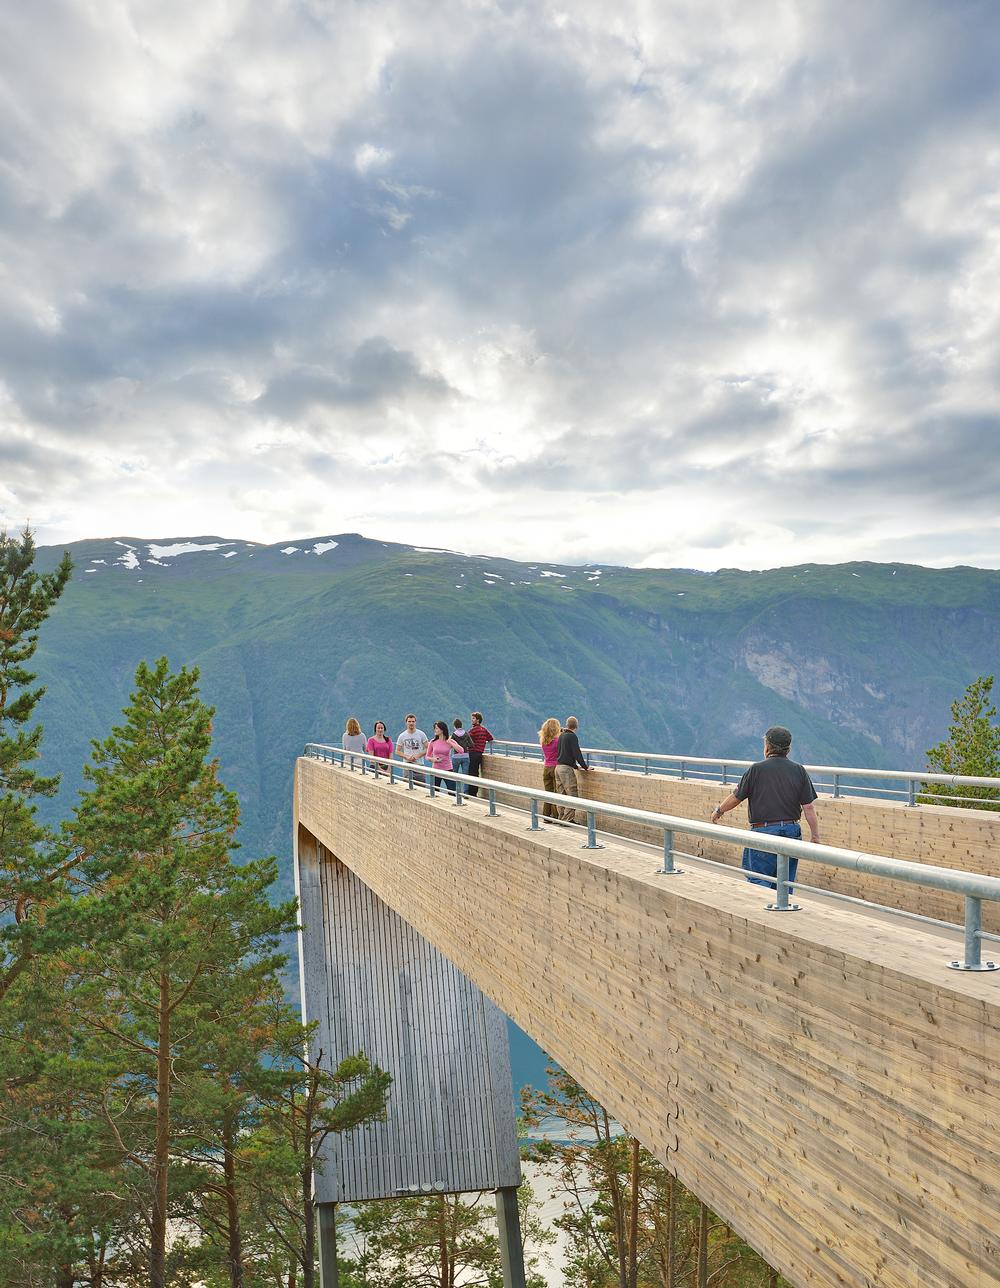 Stegastein viewpoint juts out from the mountain, 650 metres above the Aurland fjord in Norway / PHOTO: ROGER ELLINGSEN